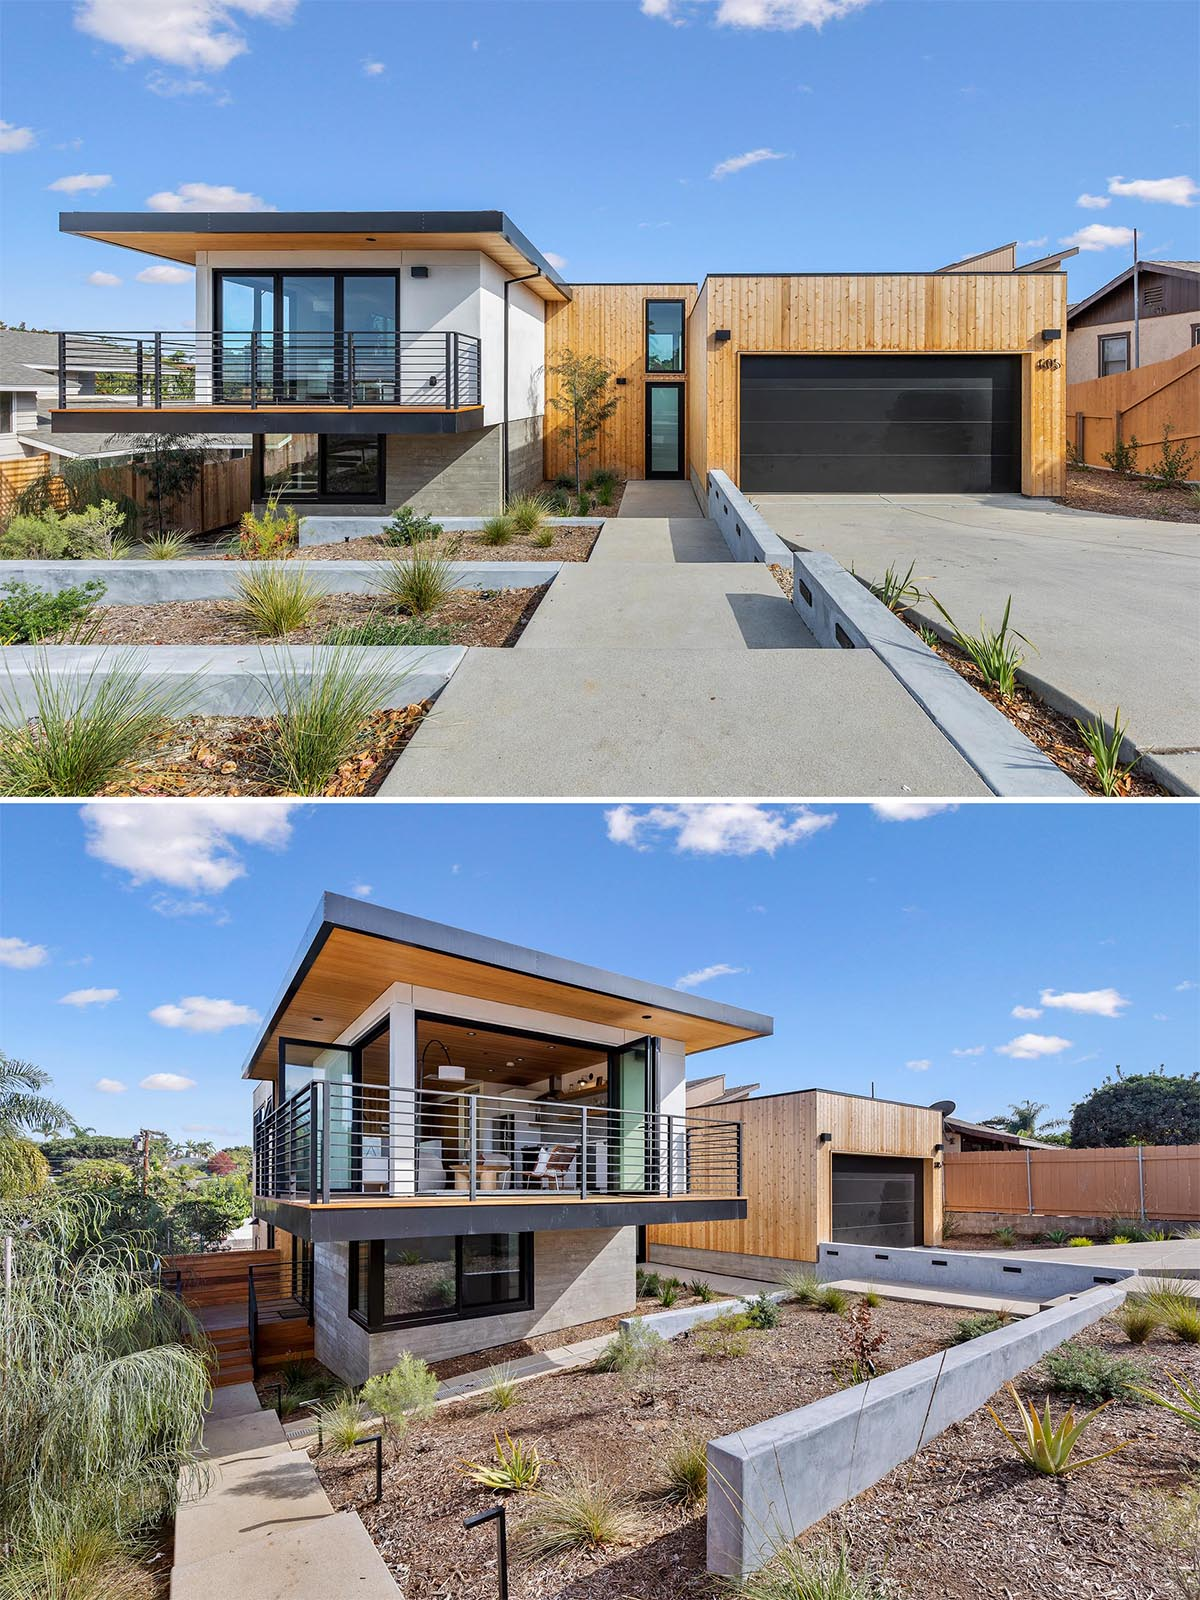 Western red cedar has been used throughout this modern home to connect the interior and exterior spaces.